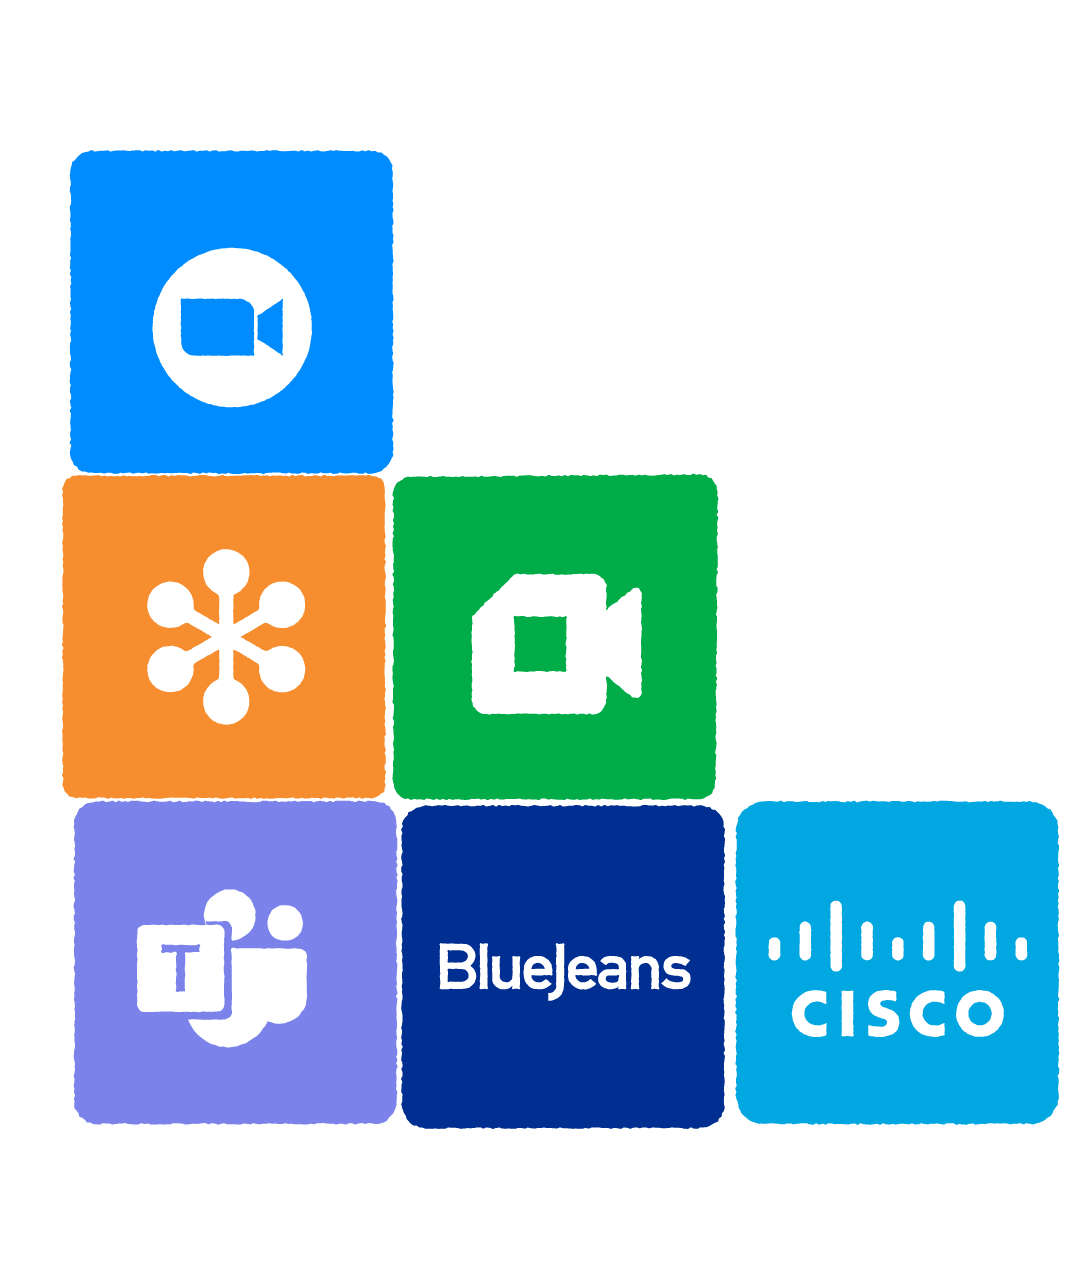 Connect to any app, including Teams, Bluejeans, Cisco, Google Meet, Go to meeting and Zoom